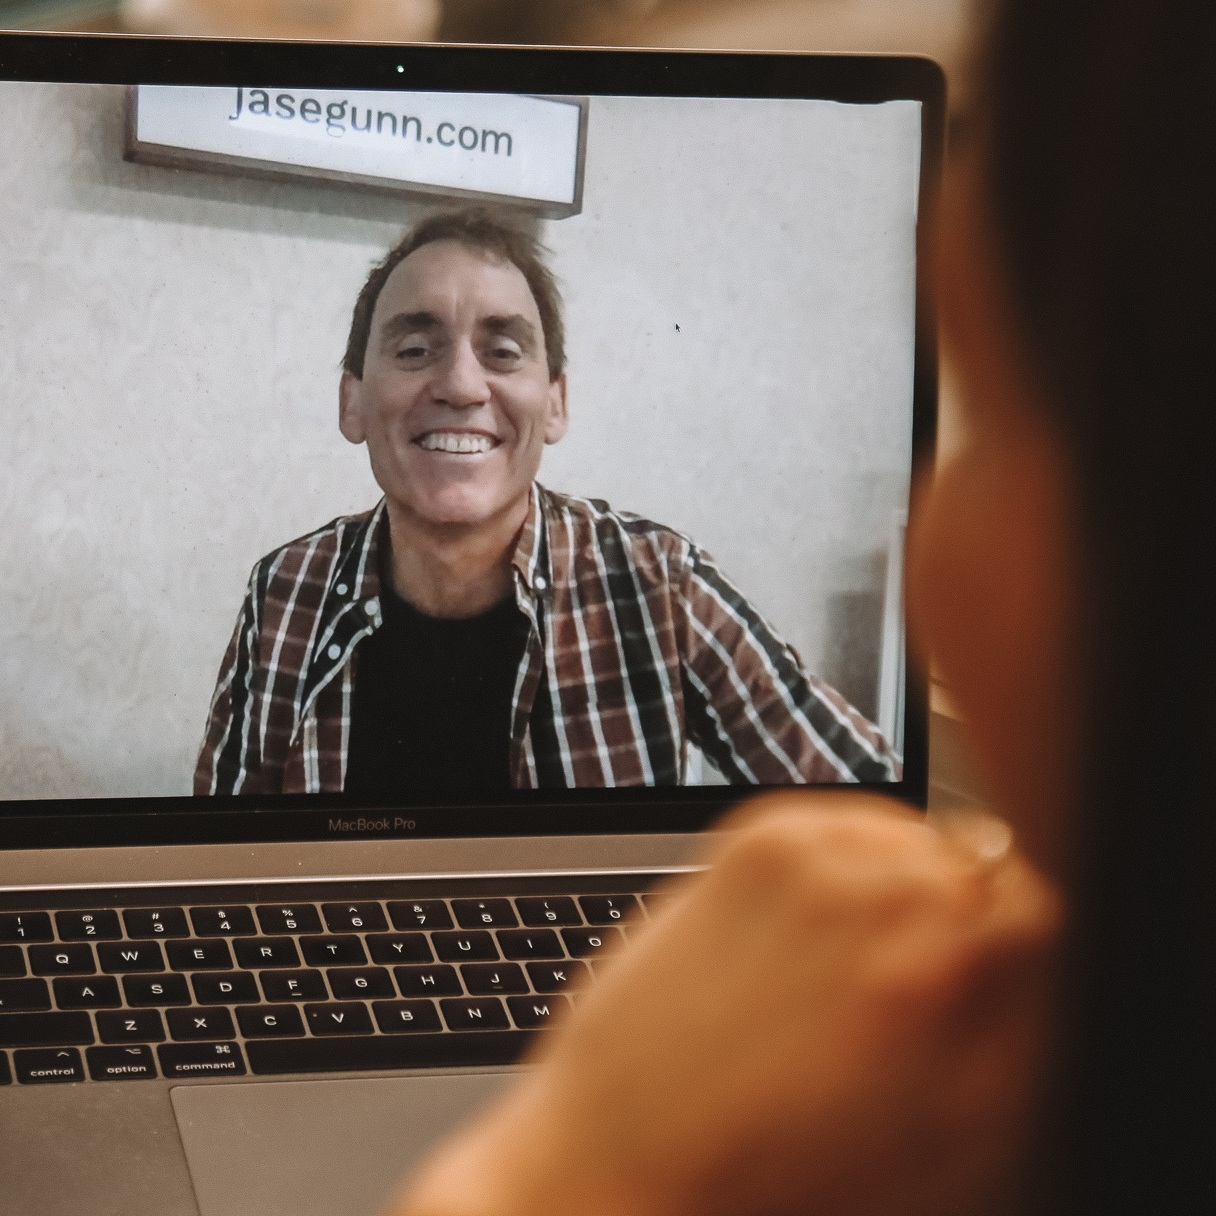 One-on-One Online - No matter where you are, we can connect. Send me a quick video of you talking to camera and I'll give you my honest and helpful feedback to take your speaking to the next level.